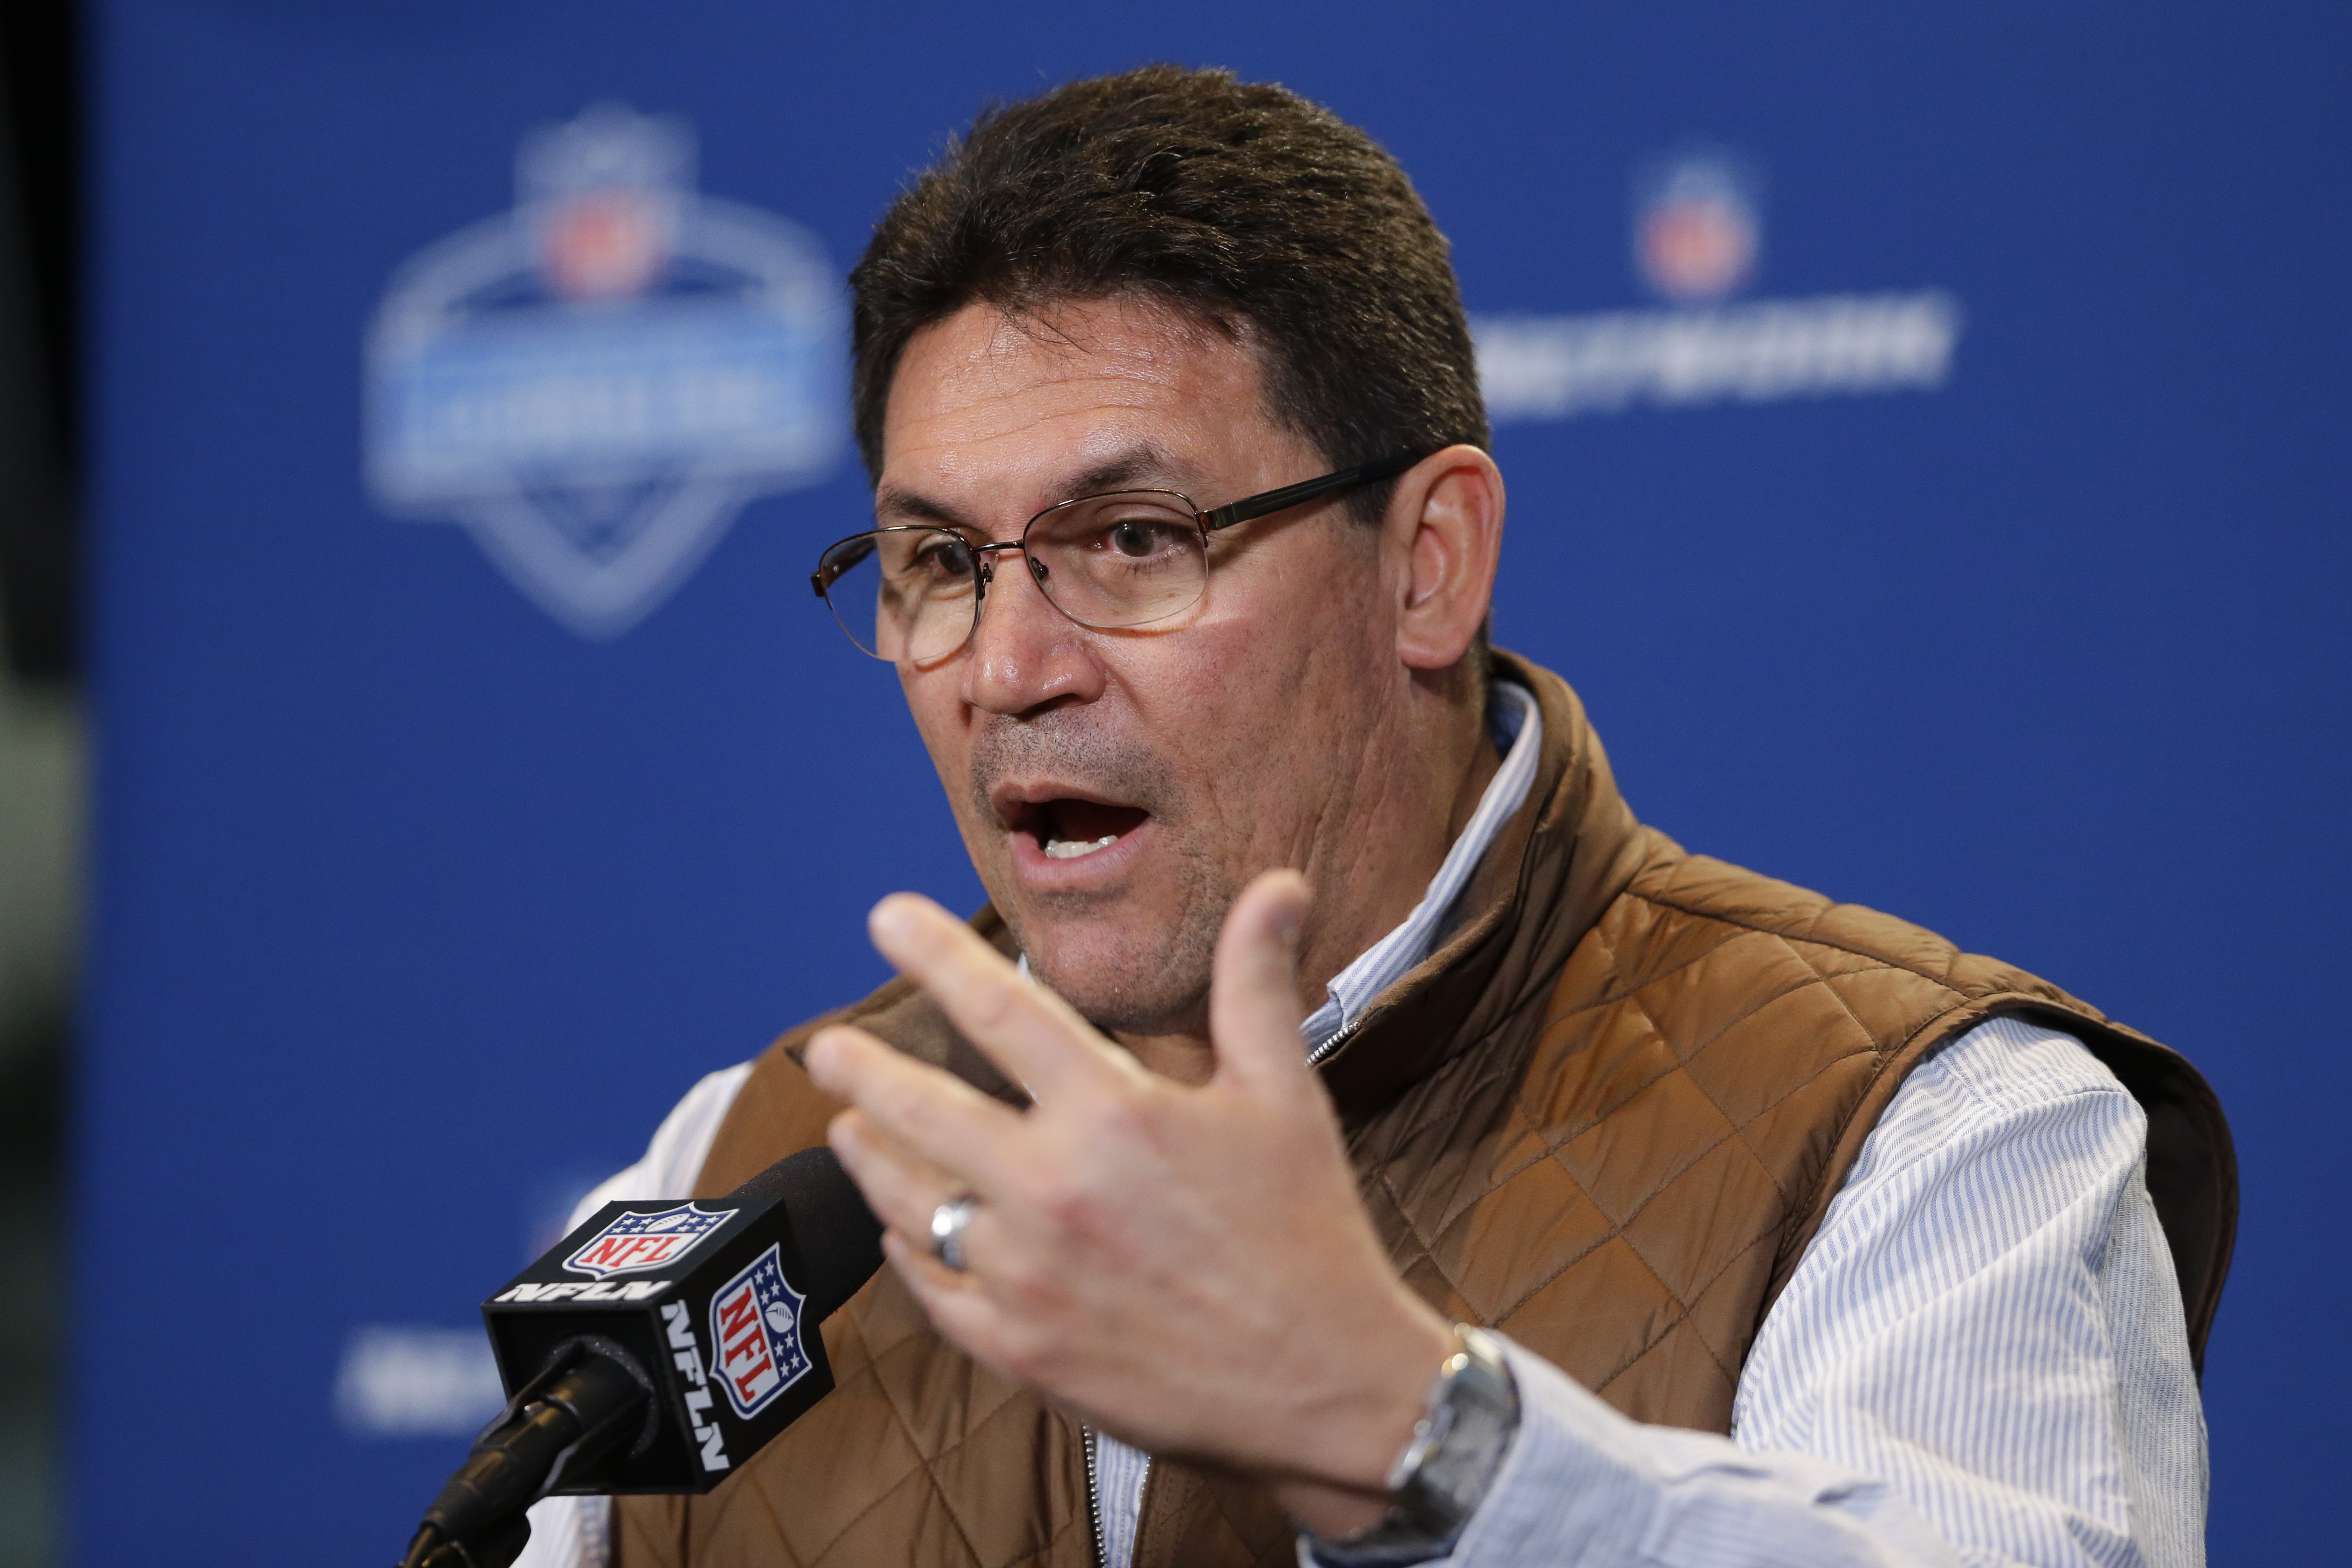 Carolina Panthers head coach Ron Rivera speaks during a press conference at the NFL football scouting combine in Indianapolis, Thursday, Feb. 25, 2016. (AP Photo/Michael Conroy)